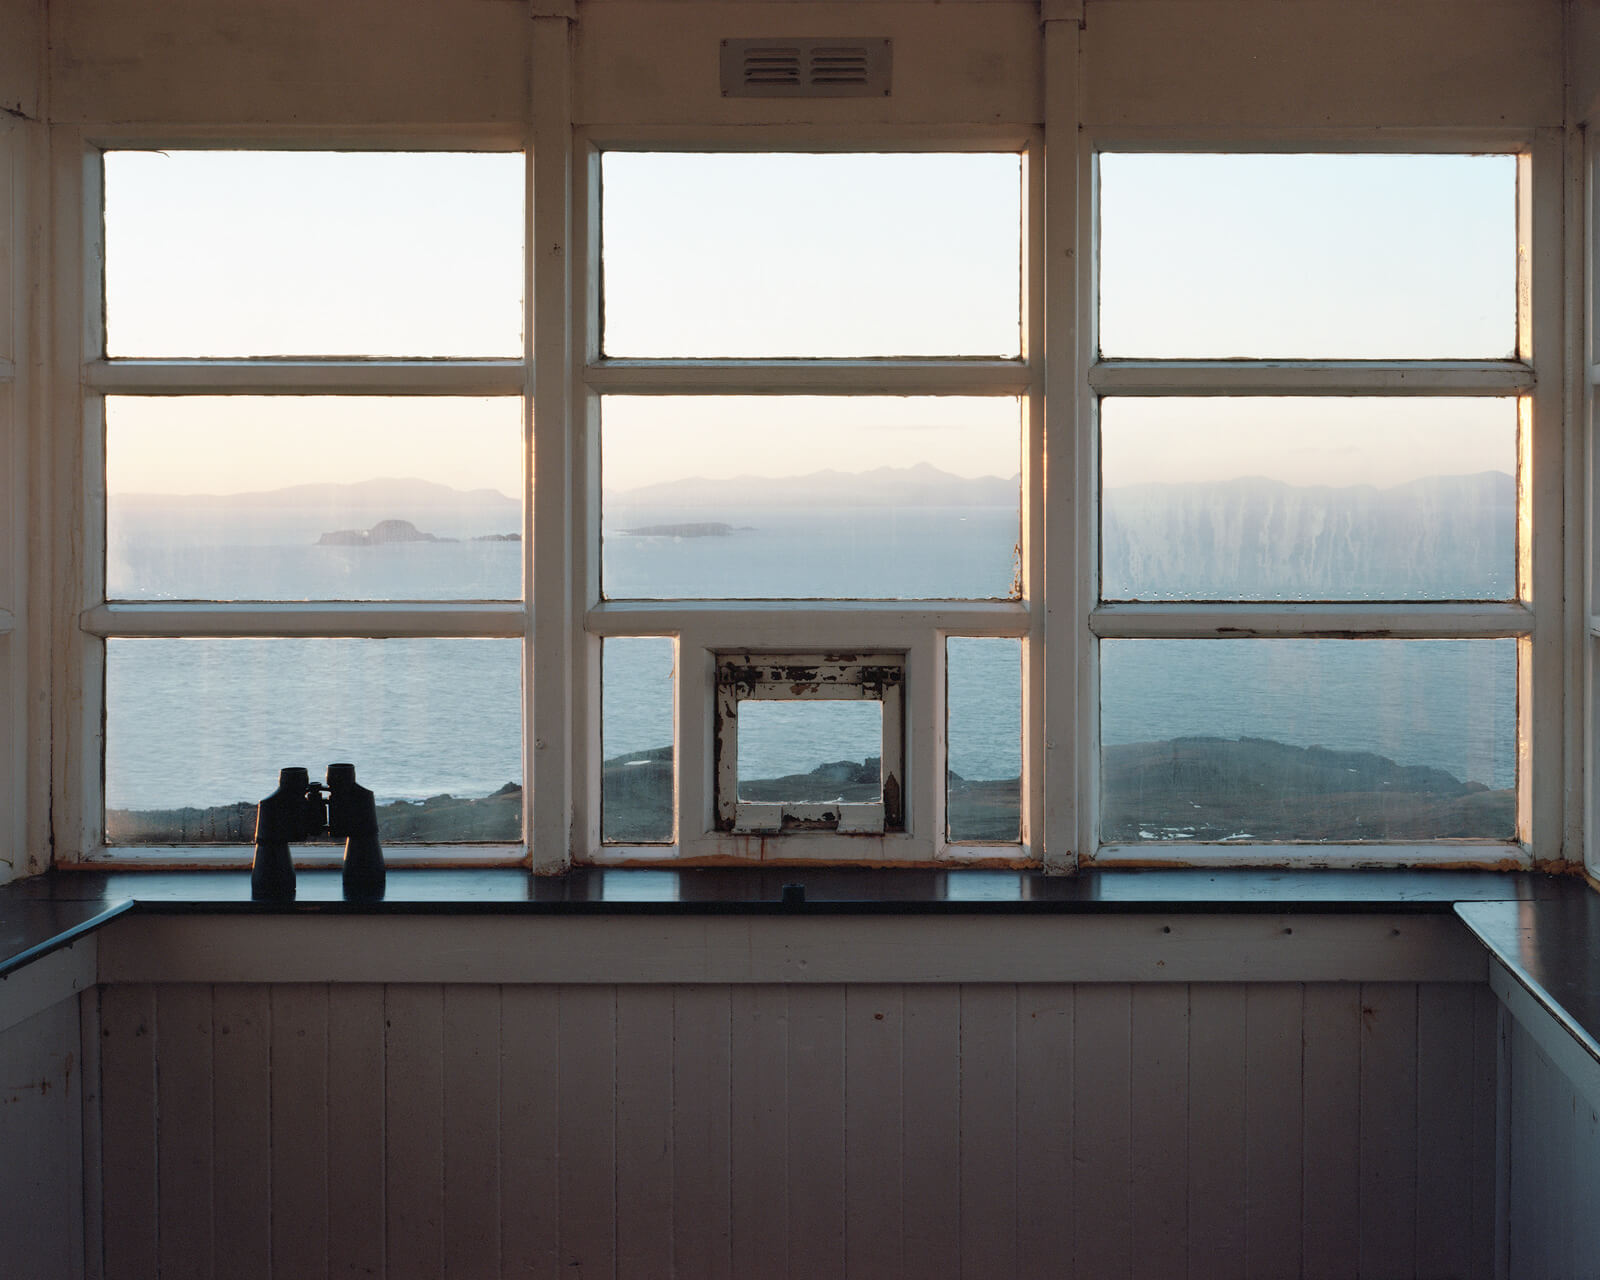 Nicholas White, The Lookout Bothy, Isle of Skye, Scotland